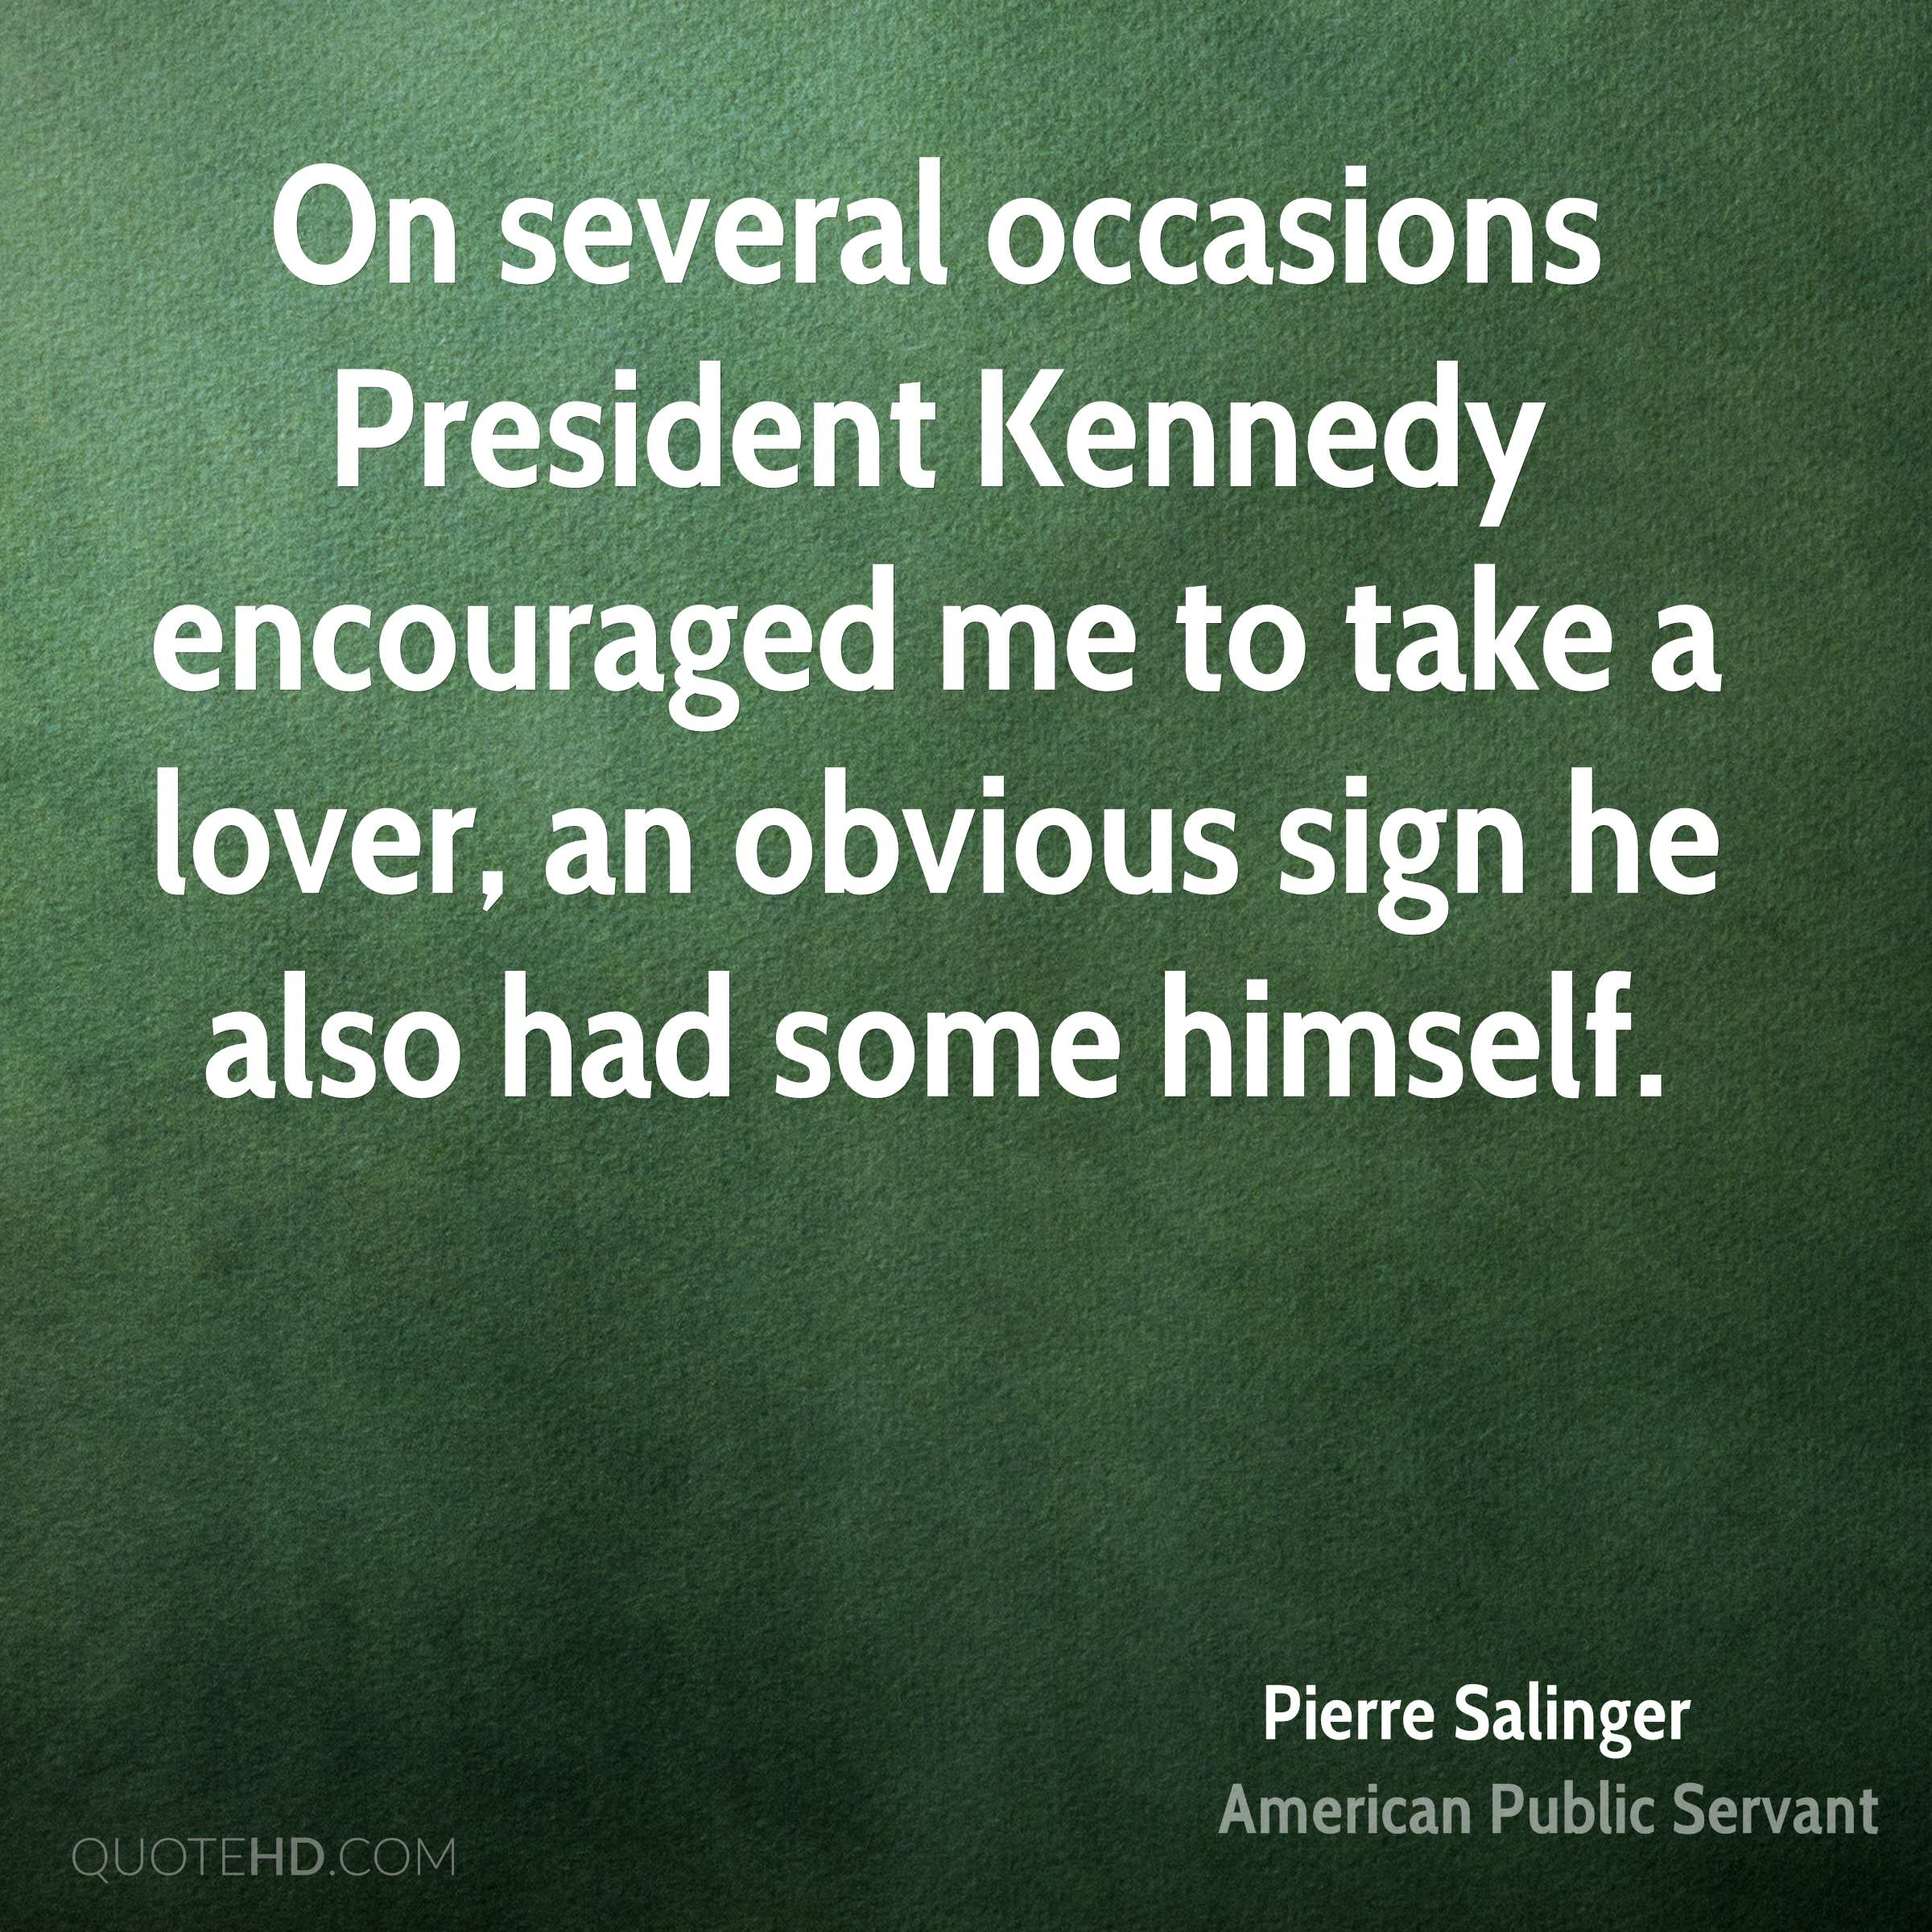 On several occasions President Kennedy encouraged me to take a lover, an obvious sign he also had some himself.